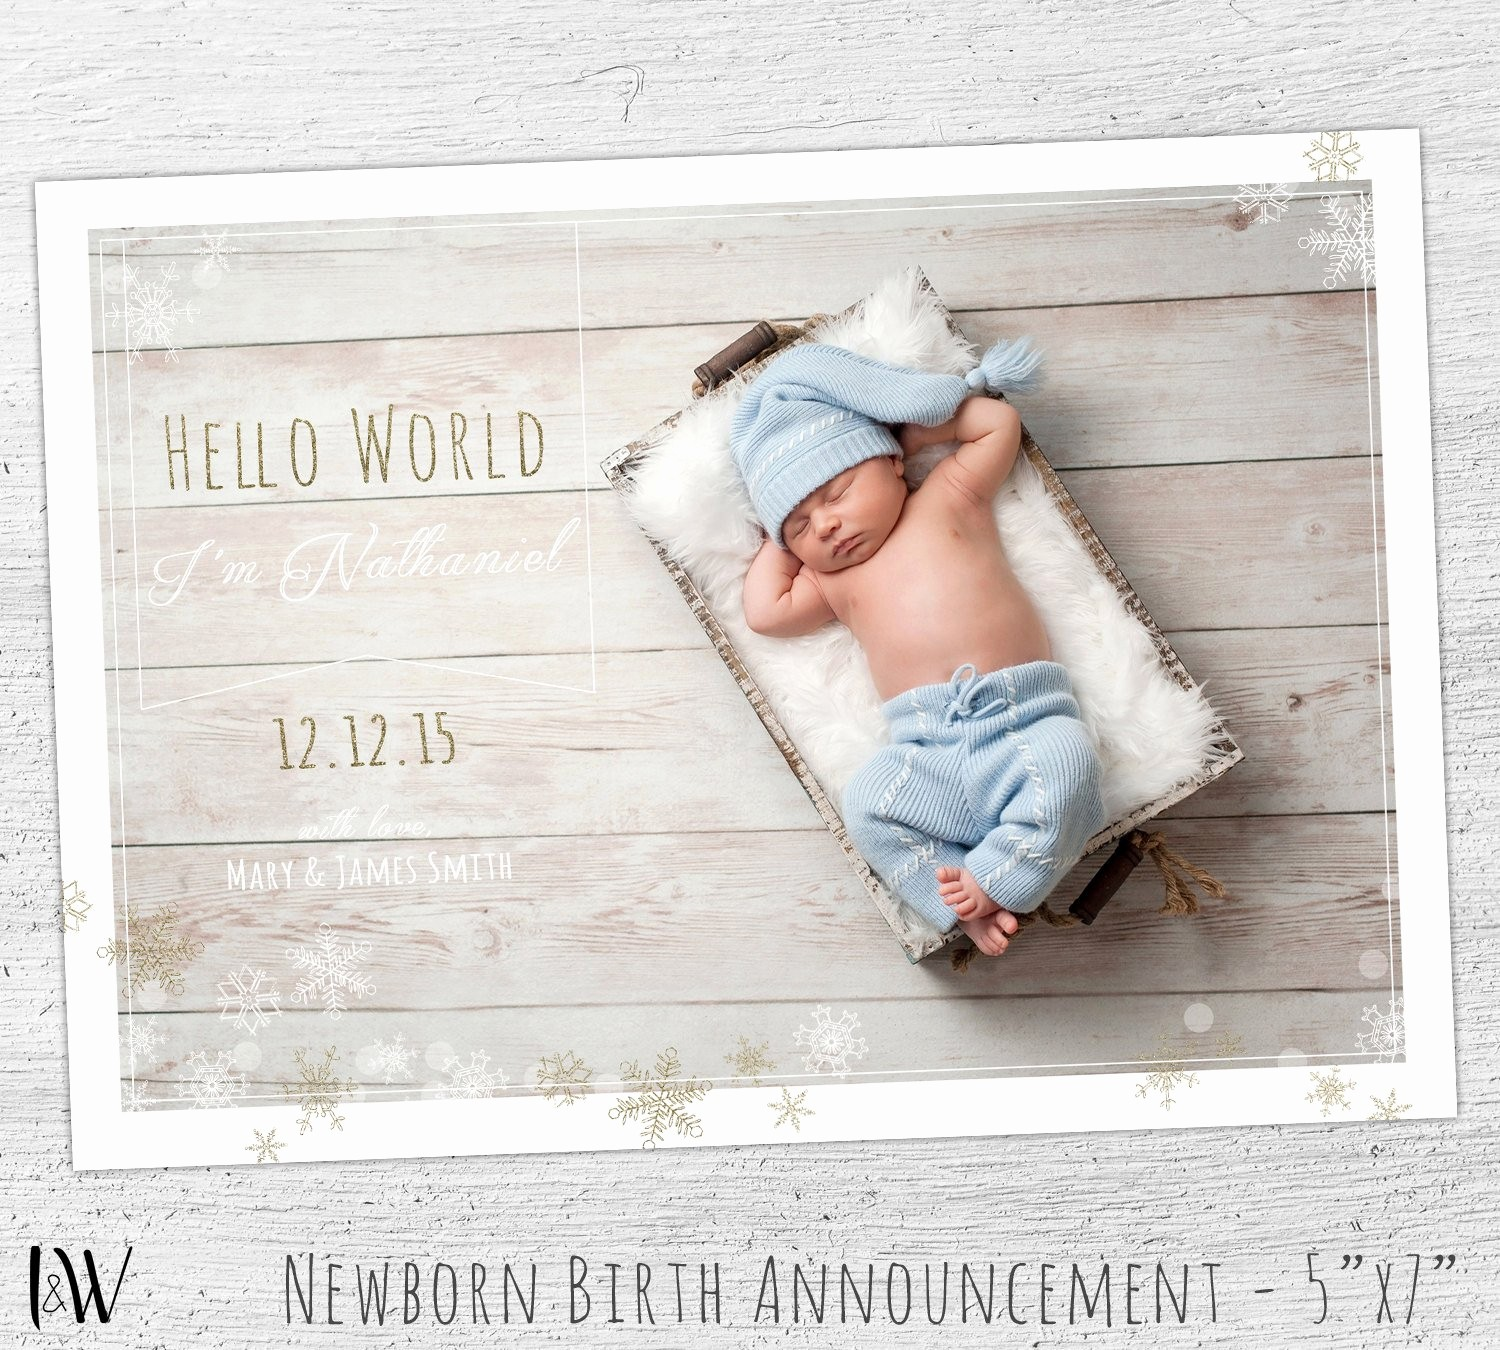 Baby Boy Announcements Free Templates Beautiful Birth Announcement Template Baby Boy Birth Announcement